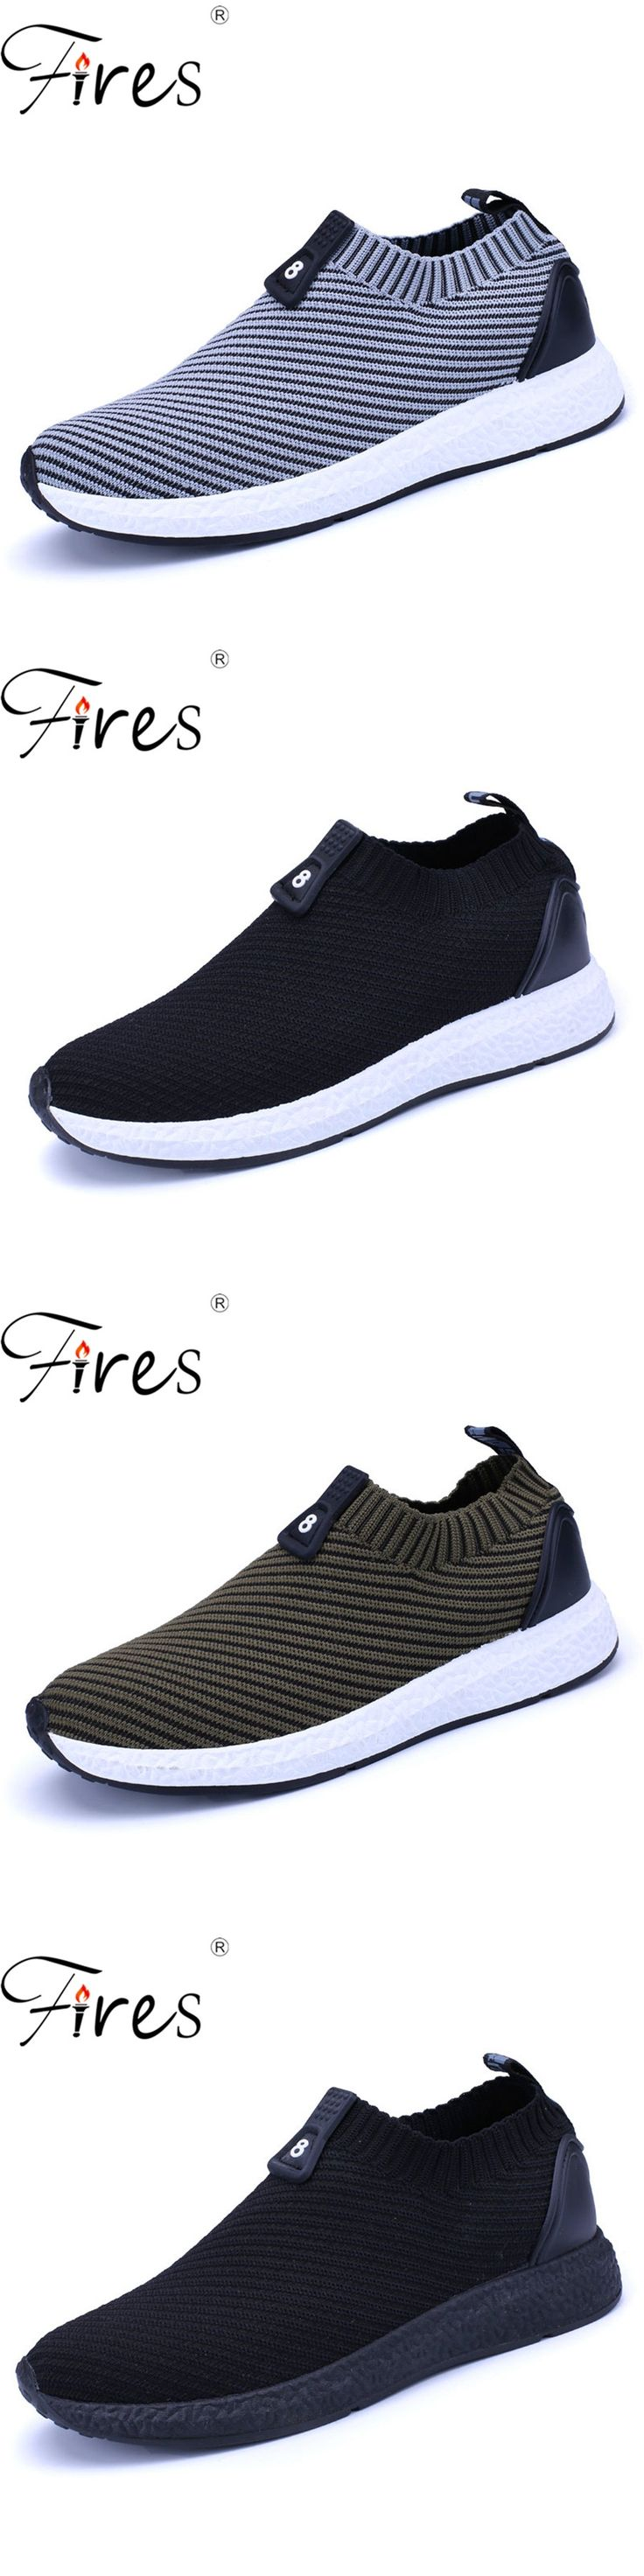 Fires Men Summer Shoes Light Sports Shoes For Man Running Shoes Fly Sneakers Autumn Trend Zapatillas Sport Flat Jogging Shoes